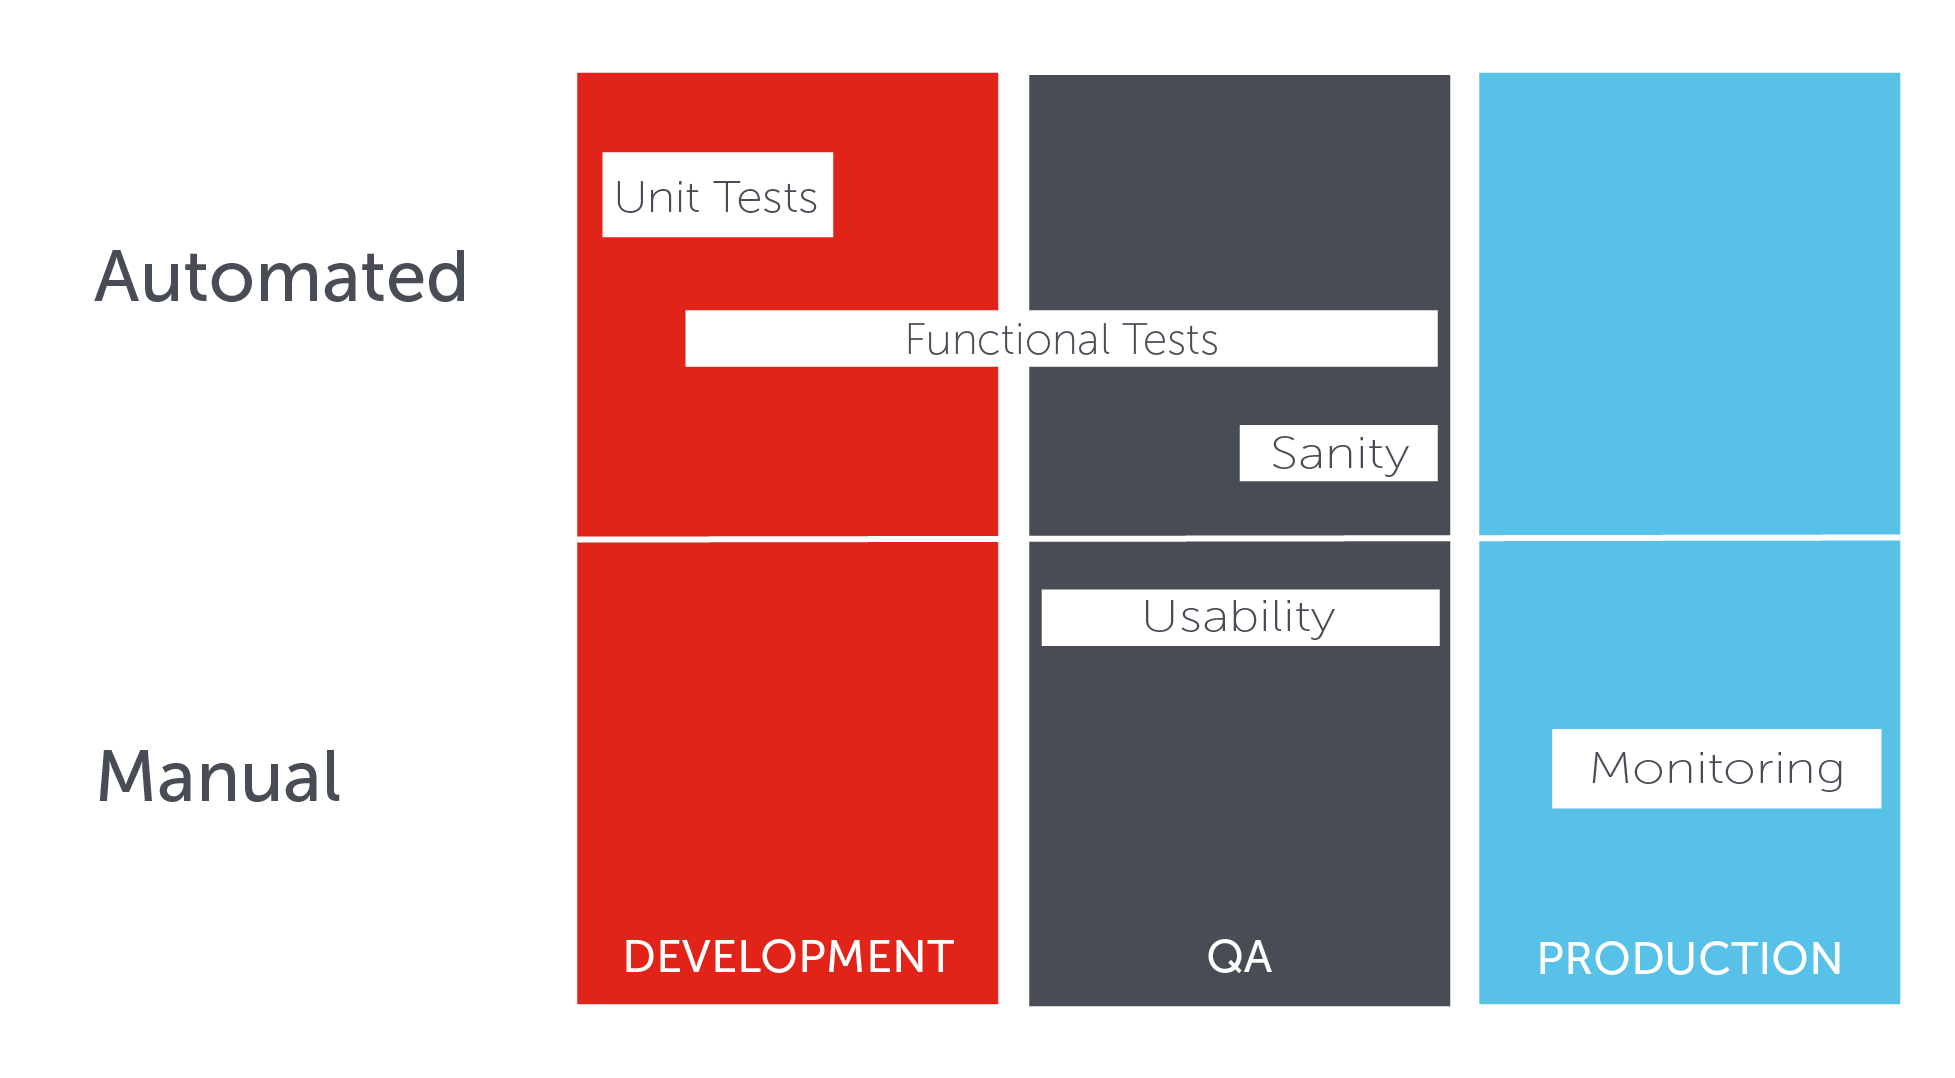 Tests to perform in the different life-cycle stages of an app